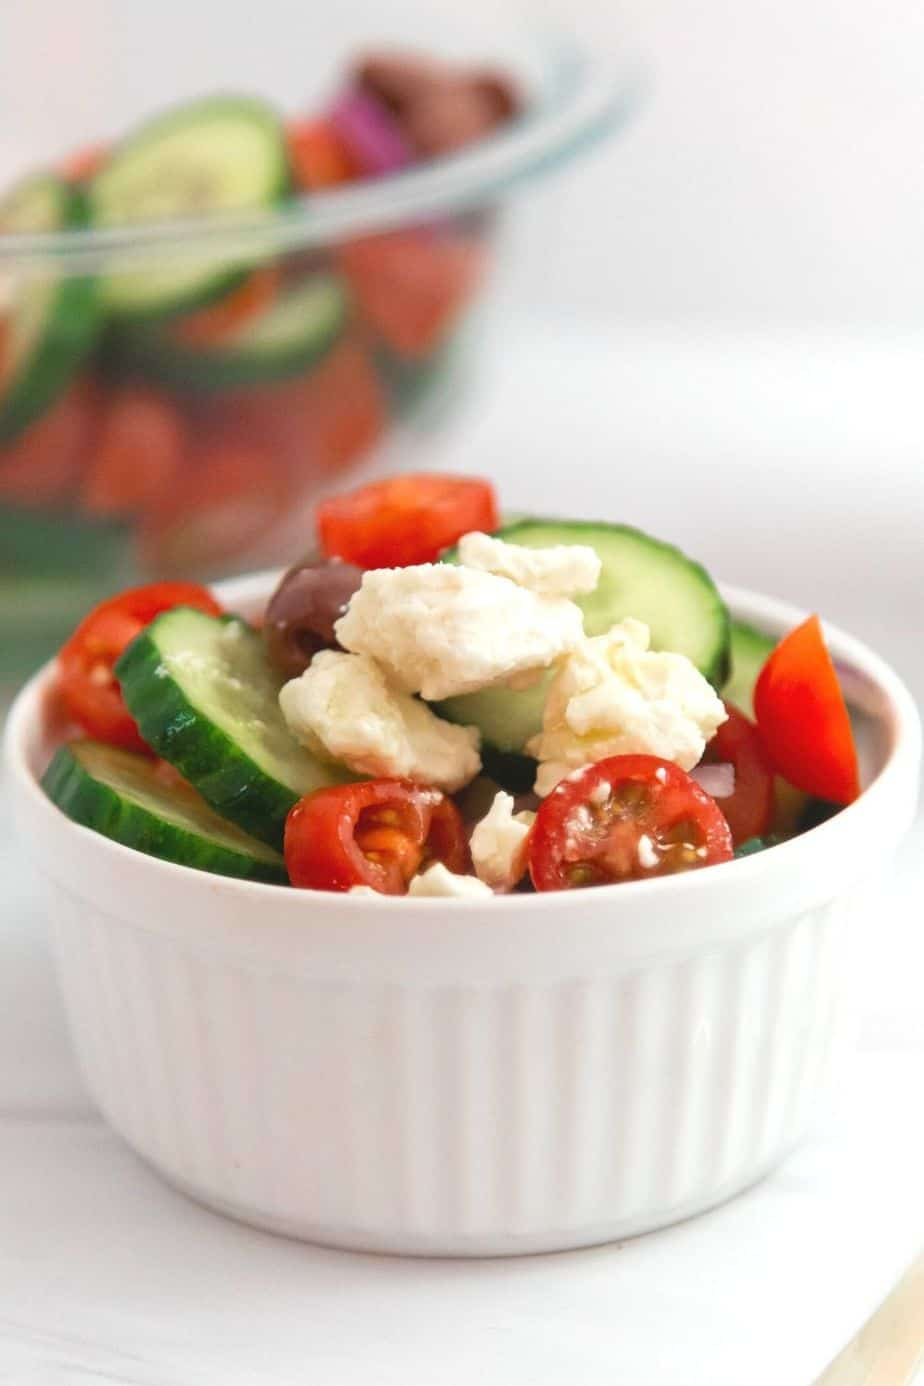 If you'd like a light and refreshing side dish, try this Greek Salad. It consists of healthy ingredients that are good for you, including cucumbers and red onions. This is an easy salad recipe to serve as a simple side dish, potluck recipe or at a summer picnic.